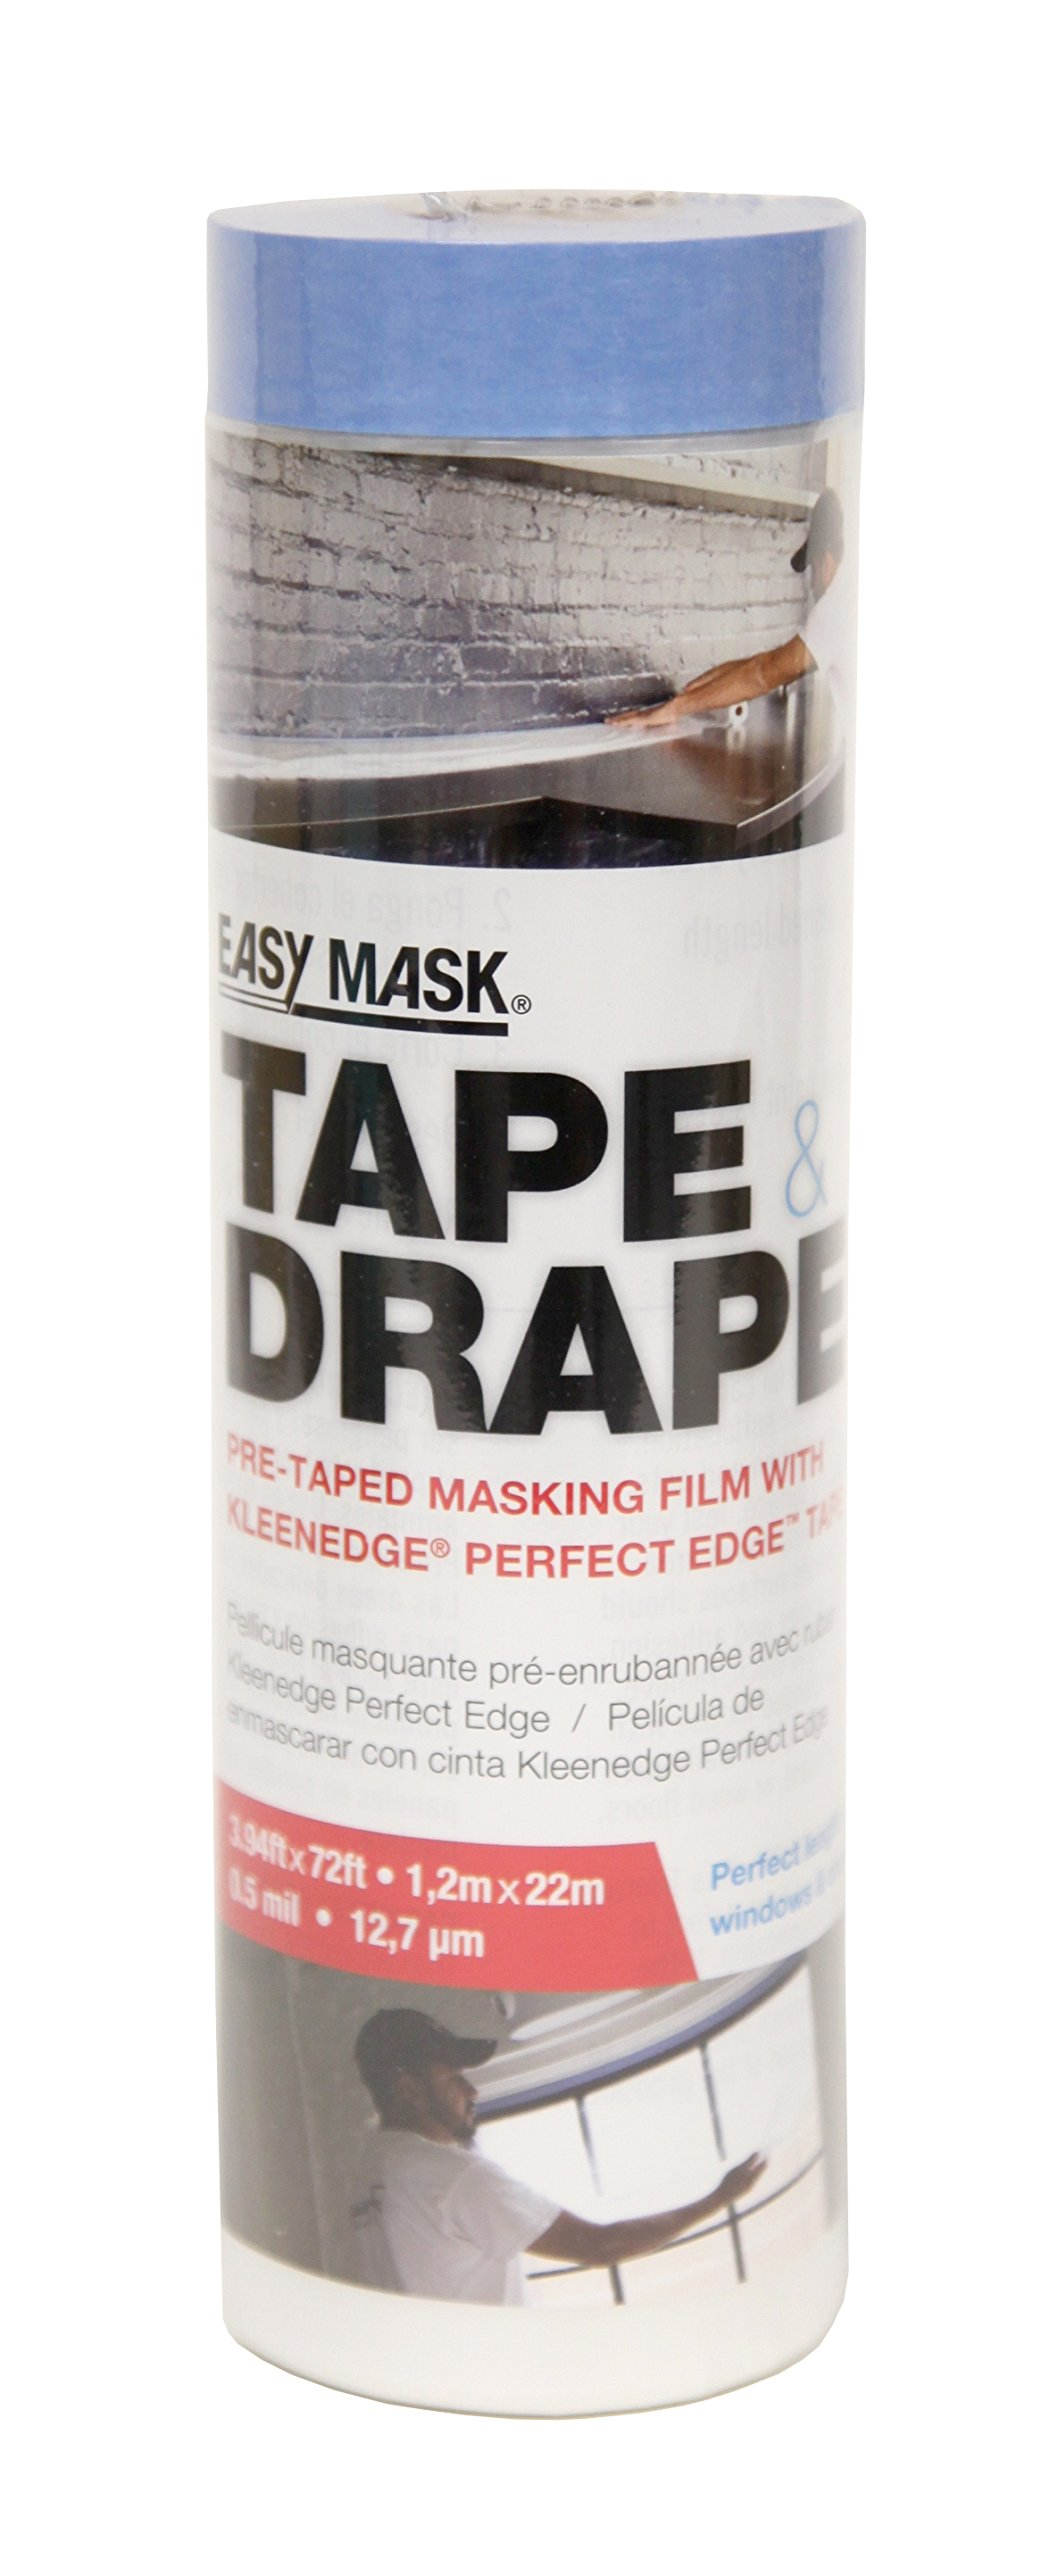 Easy Mask Tape & Drape Pre-Tape Masking Film 3.94 x 72 feet with 14 day PerfectEdge Tape by Easy Mask (Image #1)